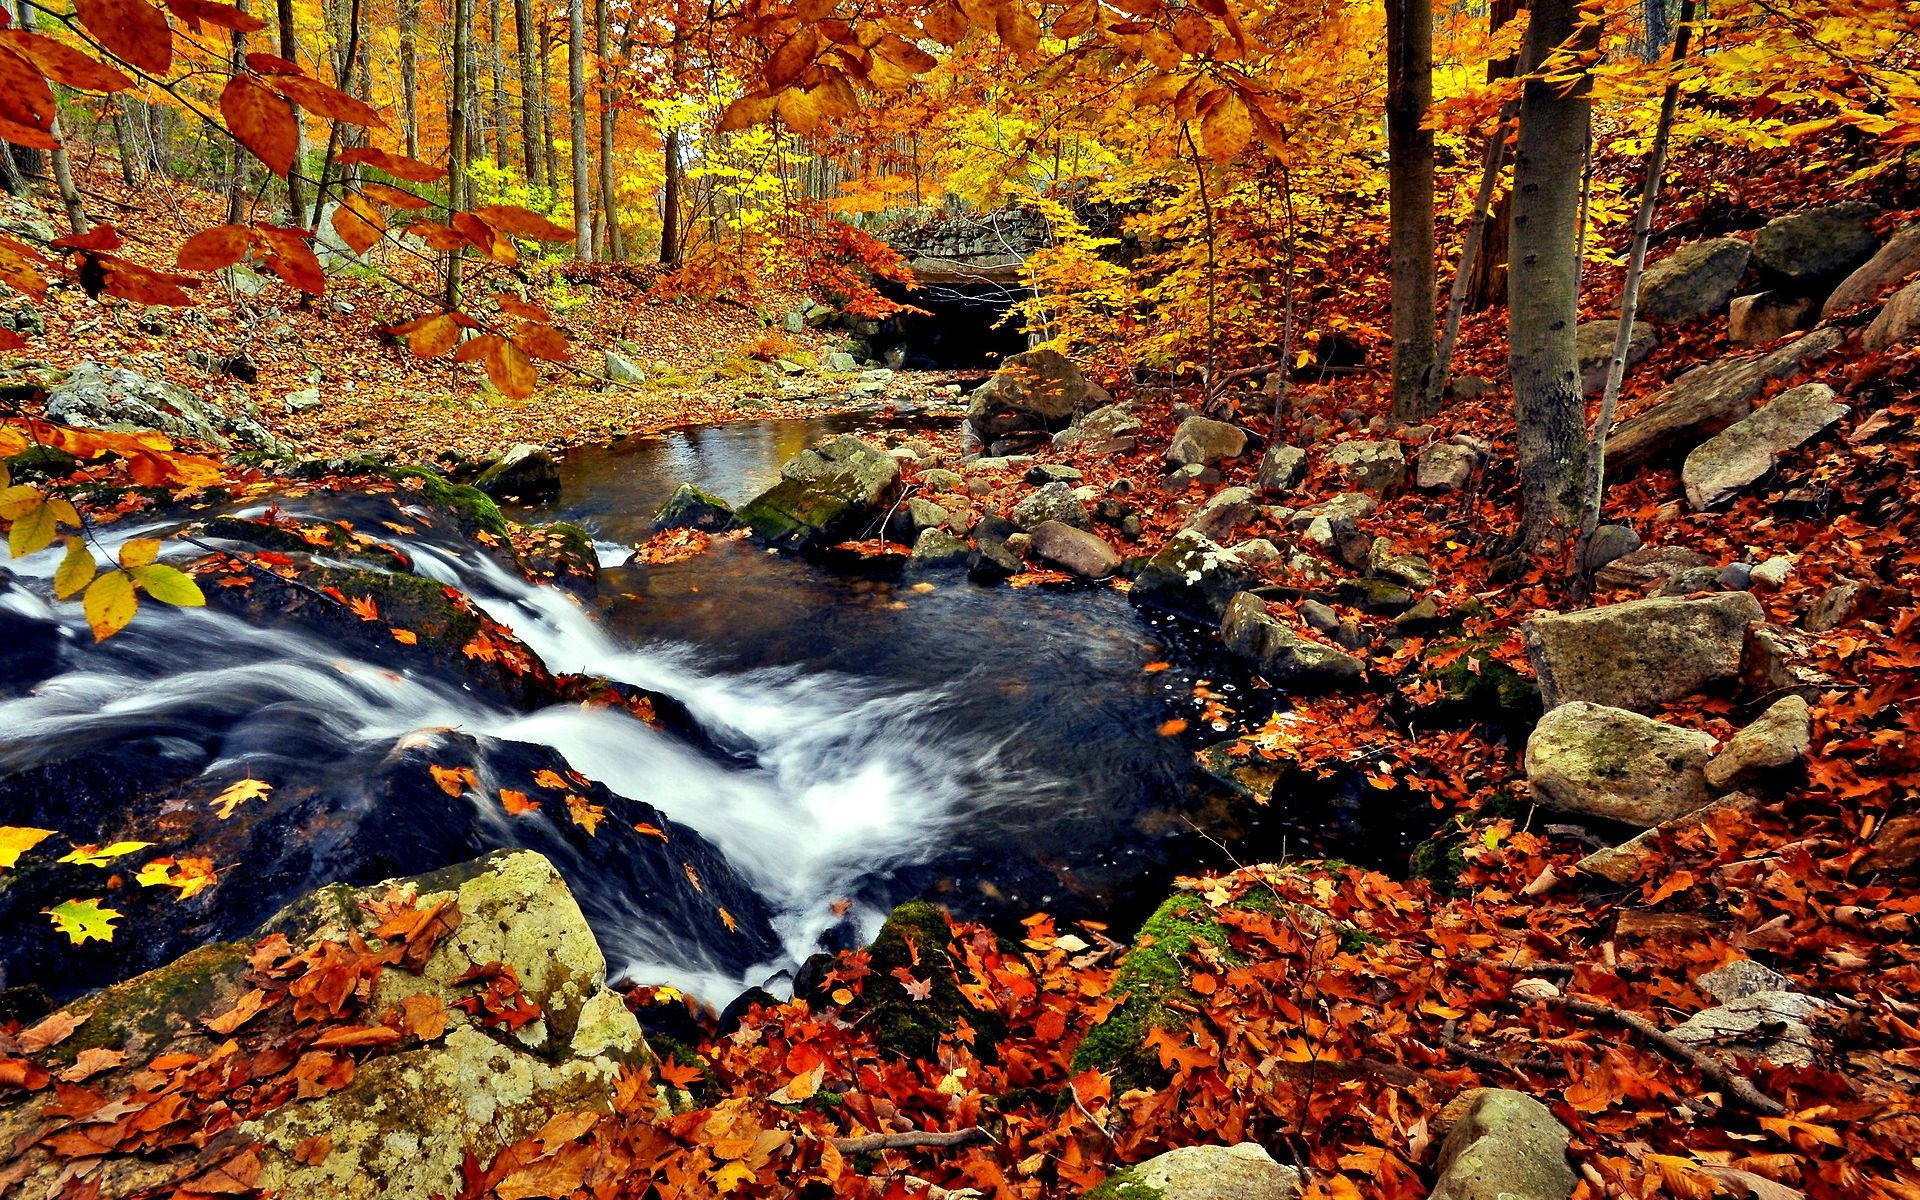 Fall Desktop Wallpapers Free Photo Forest Wallpaper Autumn 1920x1200 Wallpaper Teahub Io